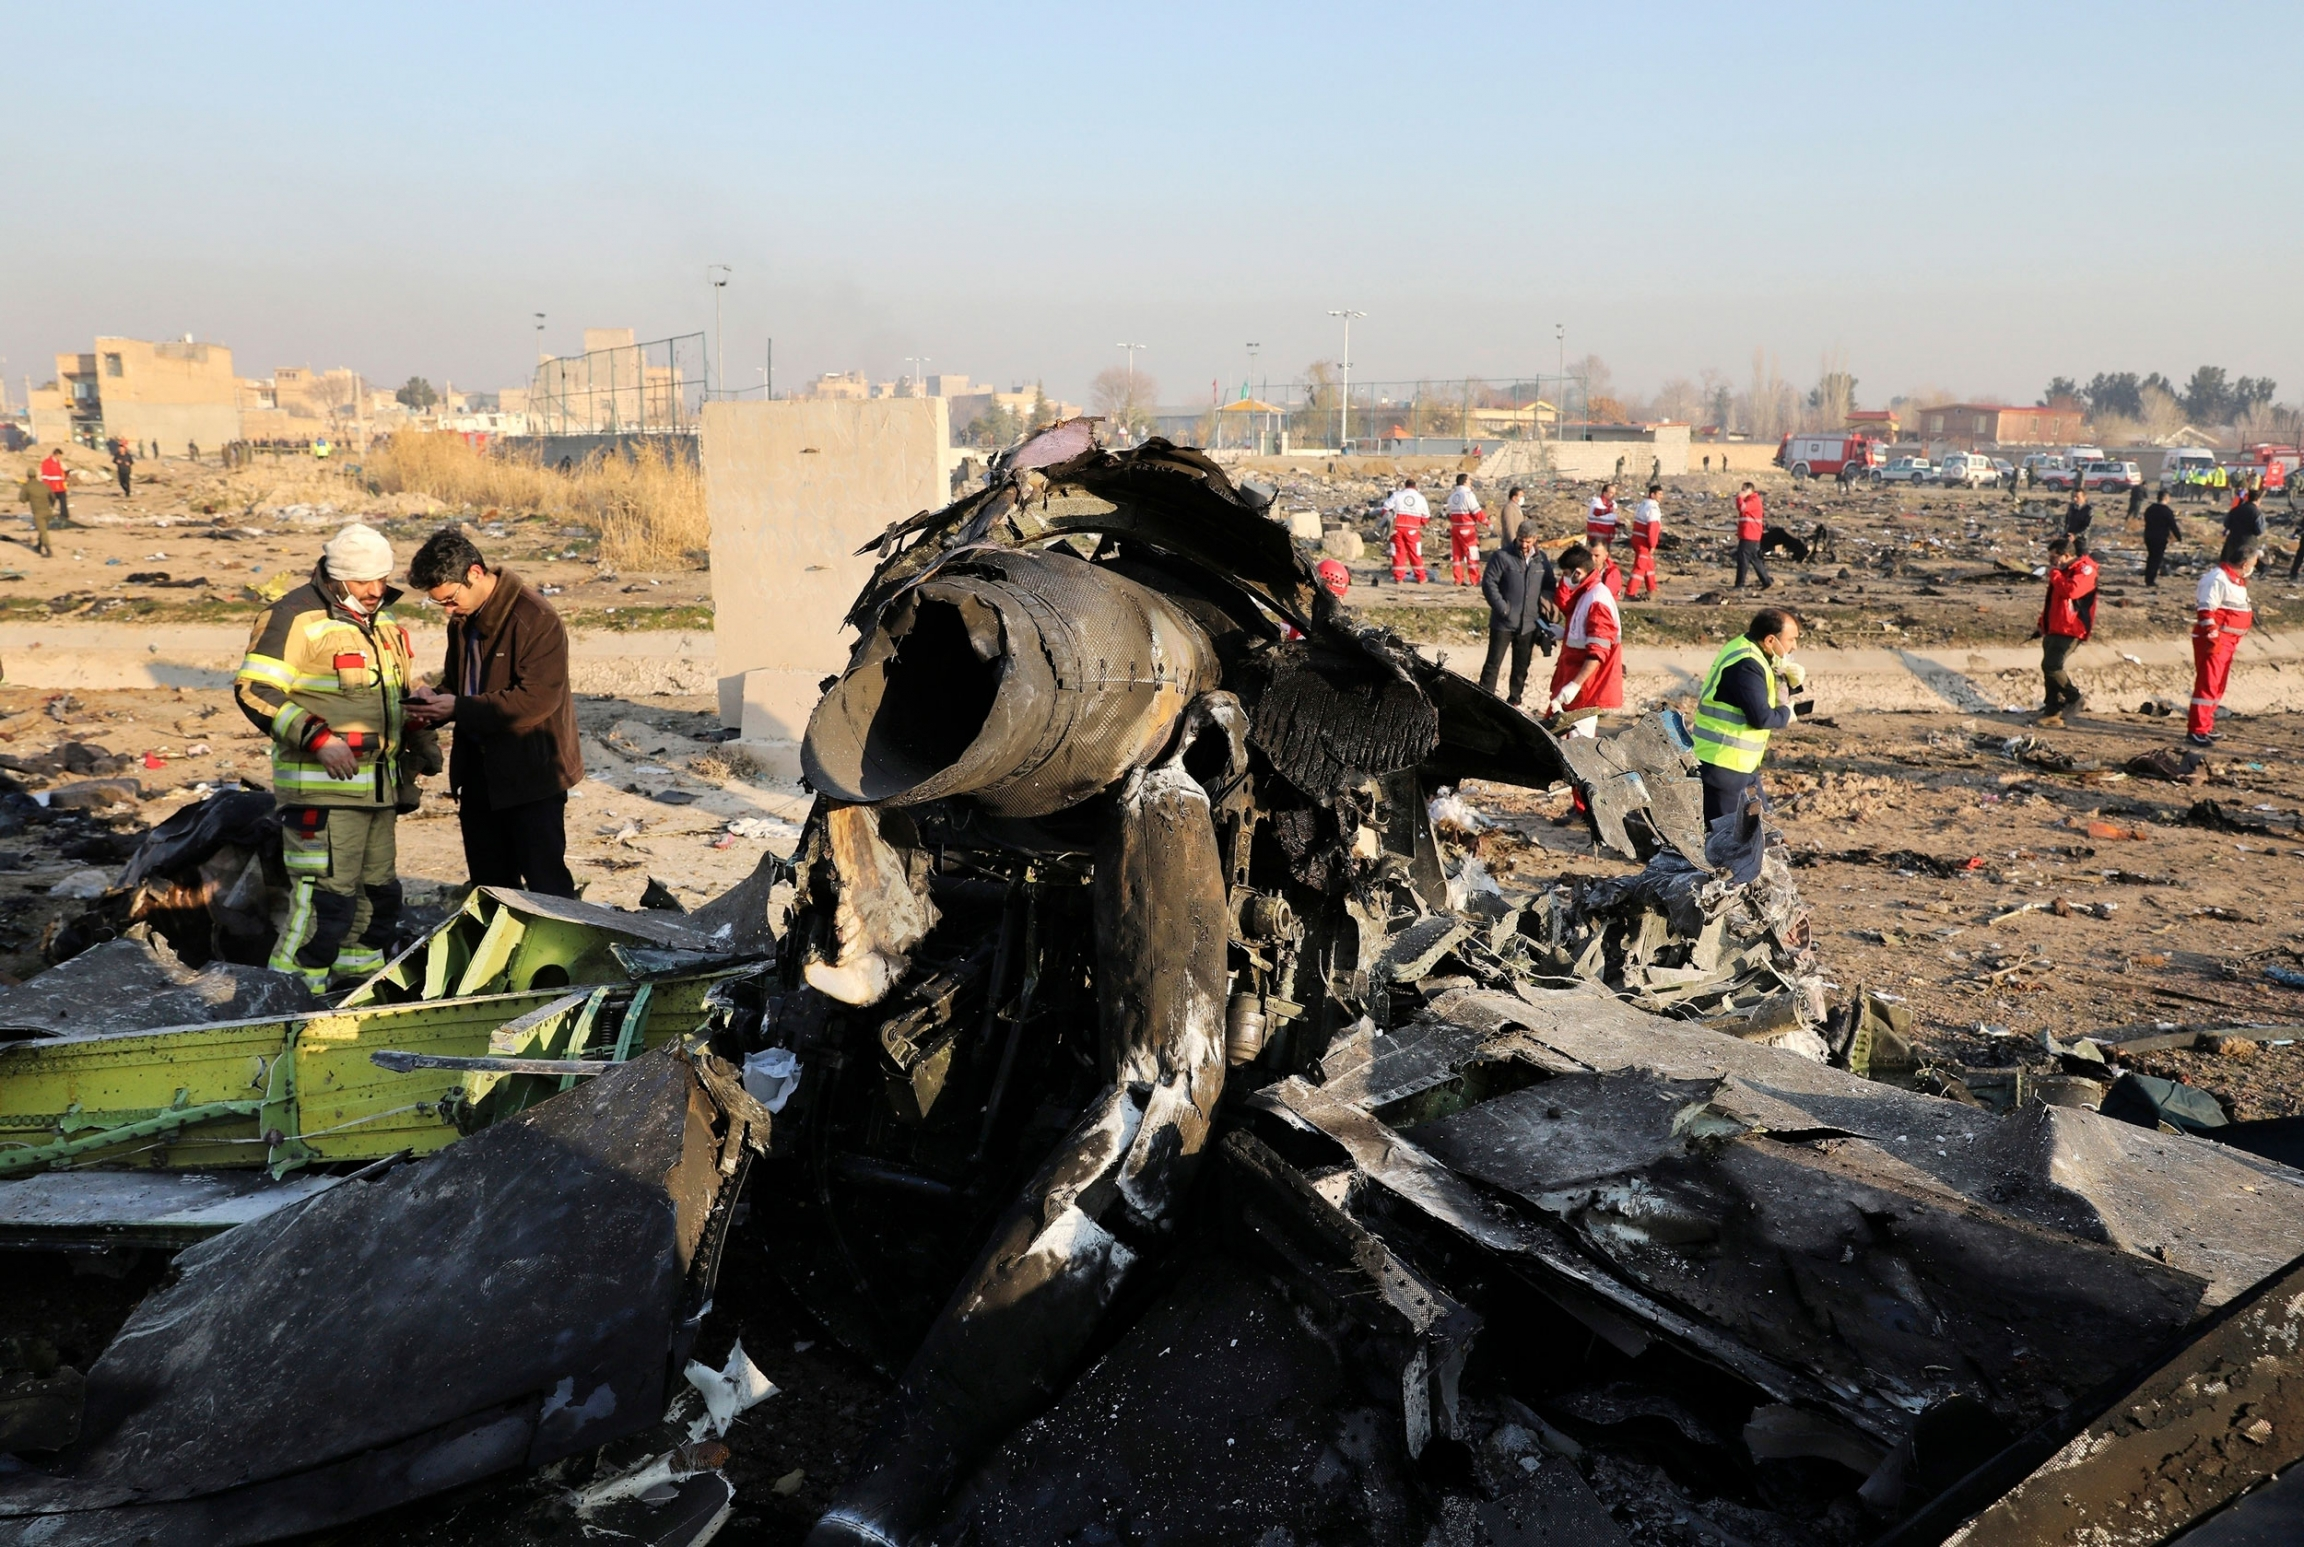 The charred remains of a passenger aircraft is shown with several inspectors shown on the scene in the distance.